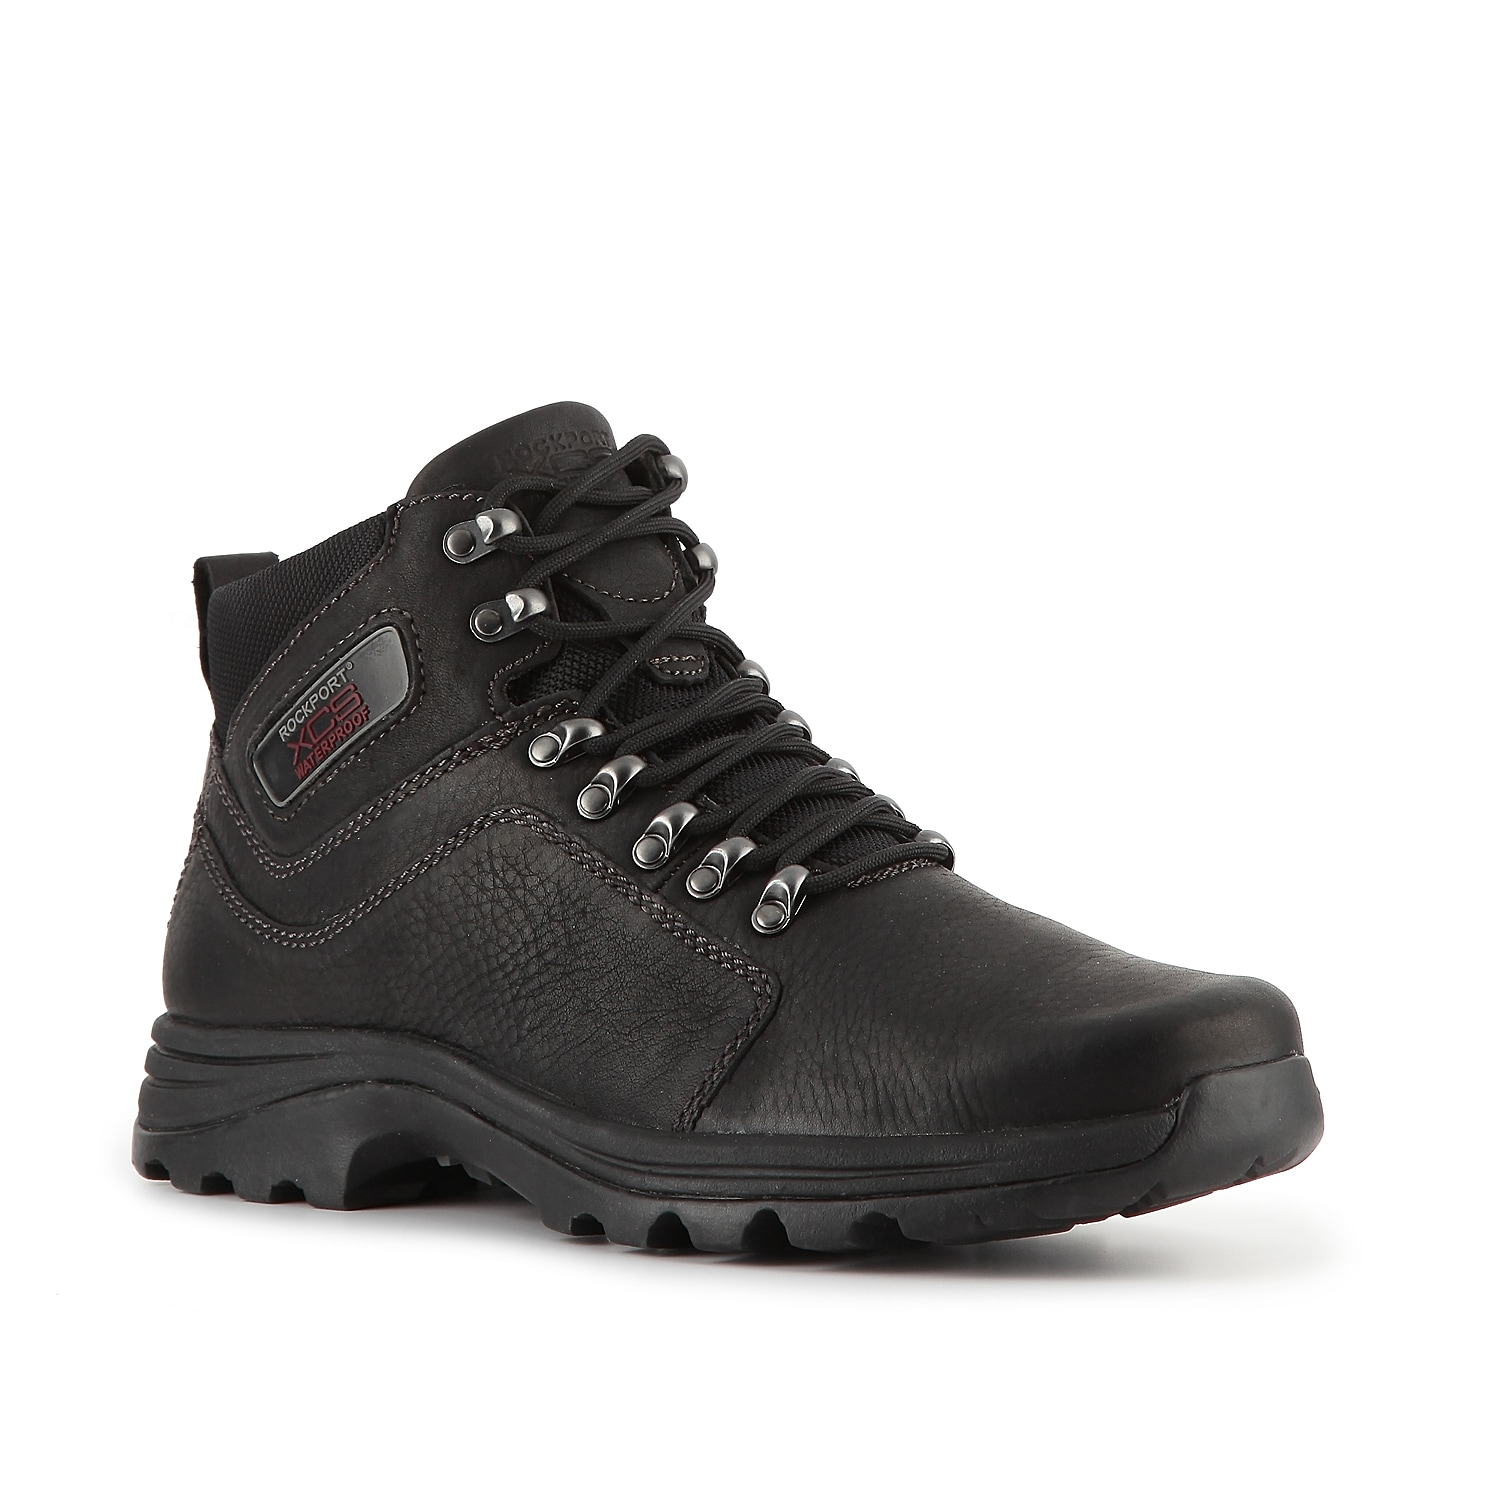 Rugged and comfortable, the men\\\'s Elkhart mid-top hiking boot from Rockport XCS will keep your feet relaxed over any terrain. With a waterproof leather upper and a traction outsole, this lace-up will help you tackle any trail with ease.